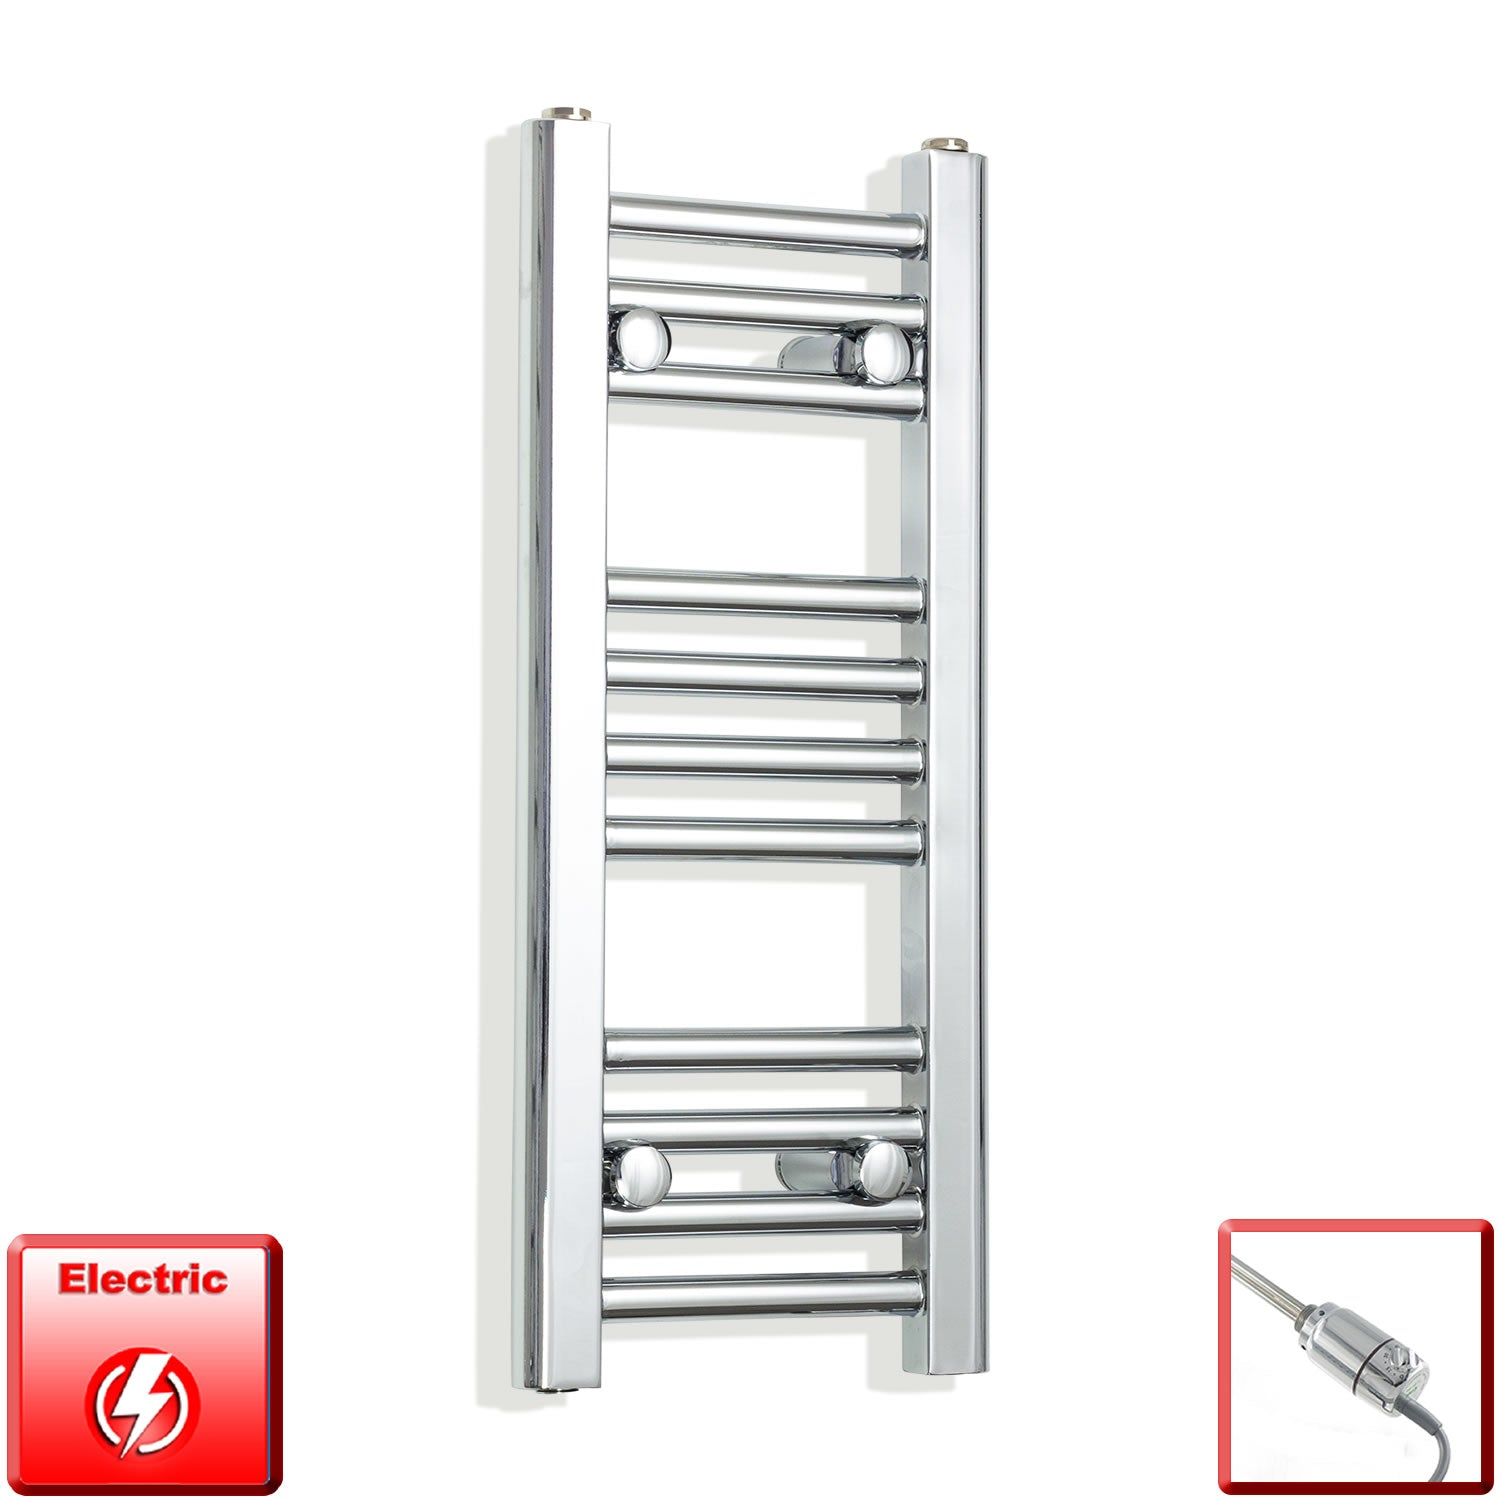 250mm Wide 600mm High Pre-Filled Chrome Electric Towel Rail Radiator With Thermostatic GT Element